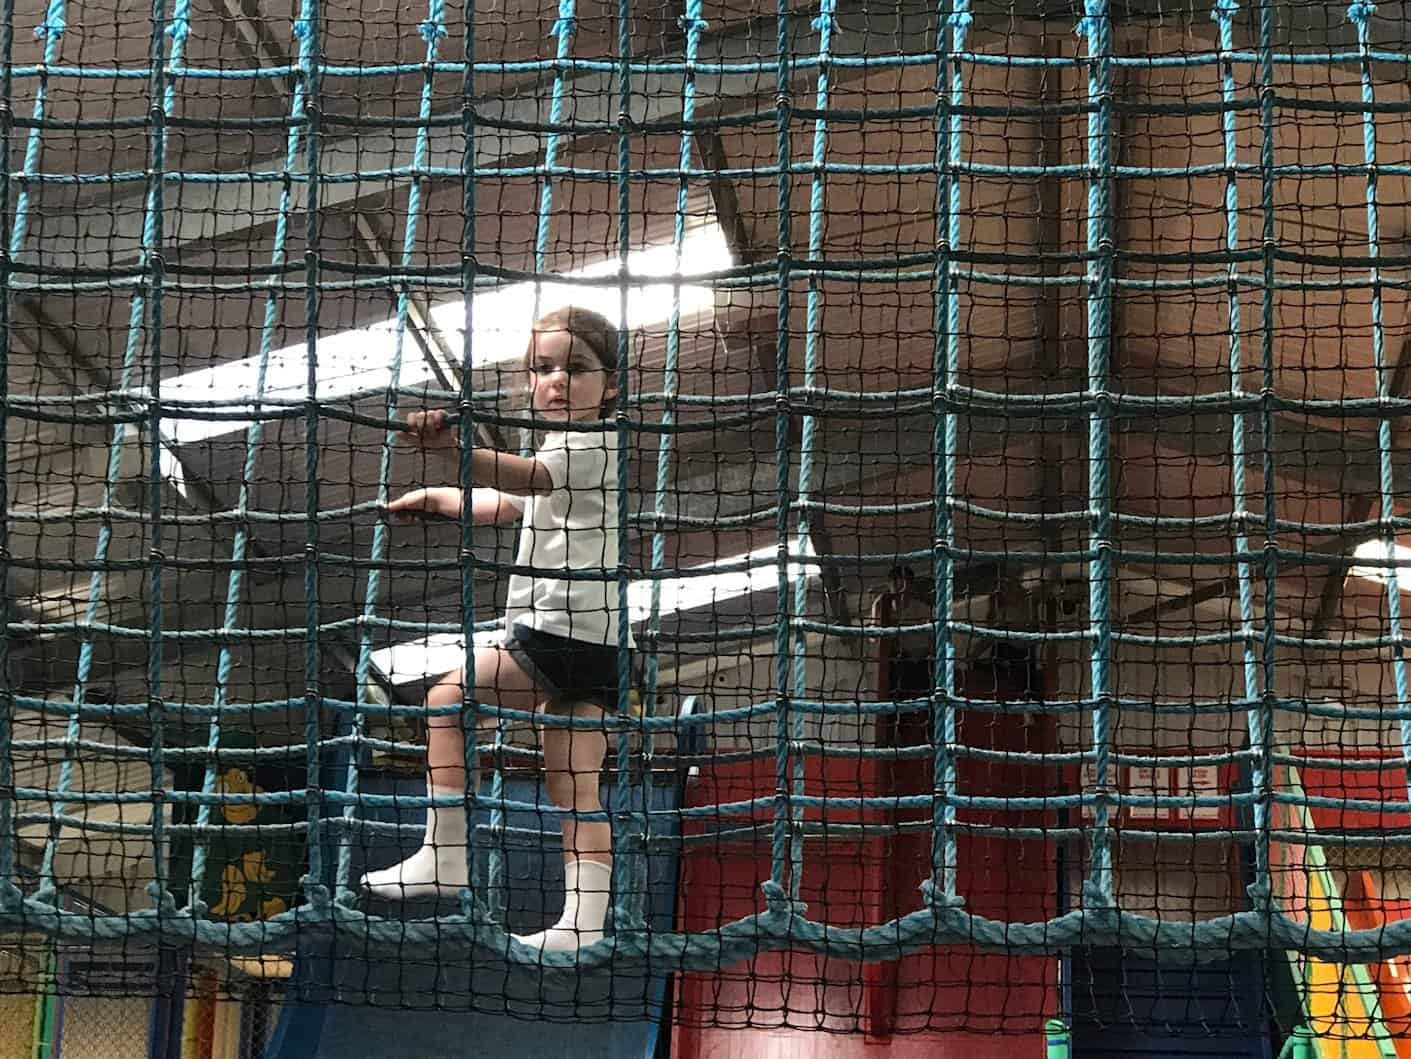 Thea climbing at the play barn